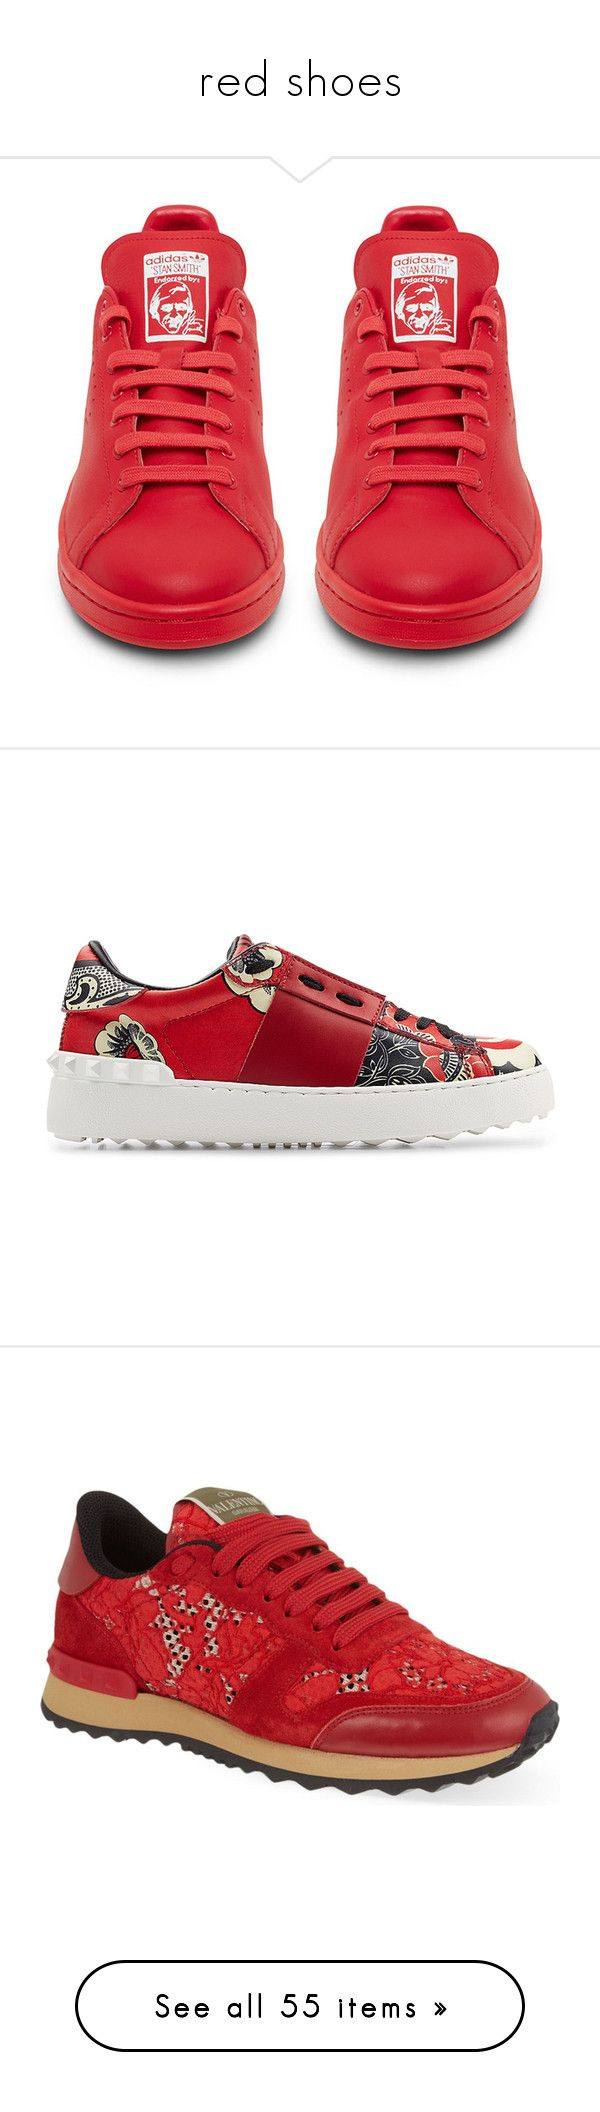 """""""red shoes"""" by halleyzzle ❤ liked on Polyvore featuring shoes, sneakers, red sneakers, red shoes, red trainers, low profile shoes, low top, round toe shoes, studded shoes and valentino sneakers"""